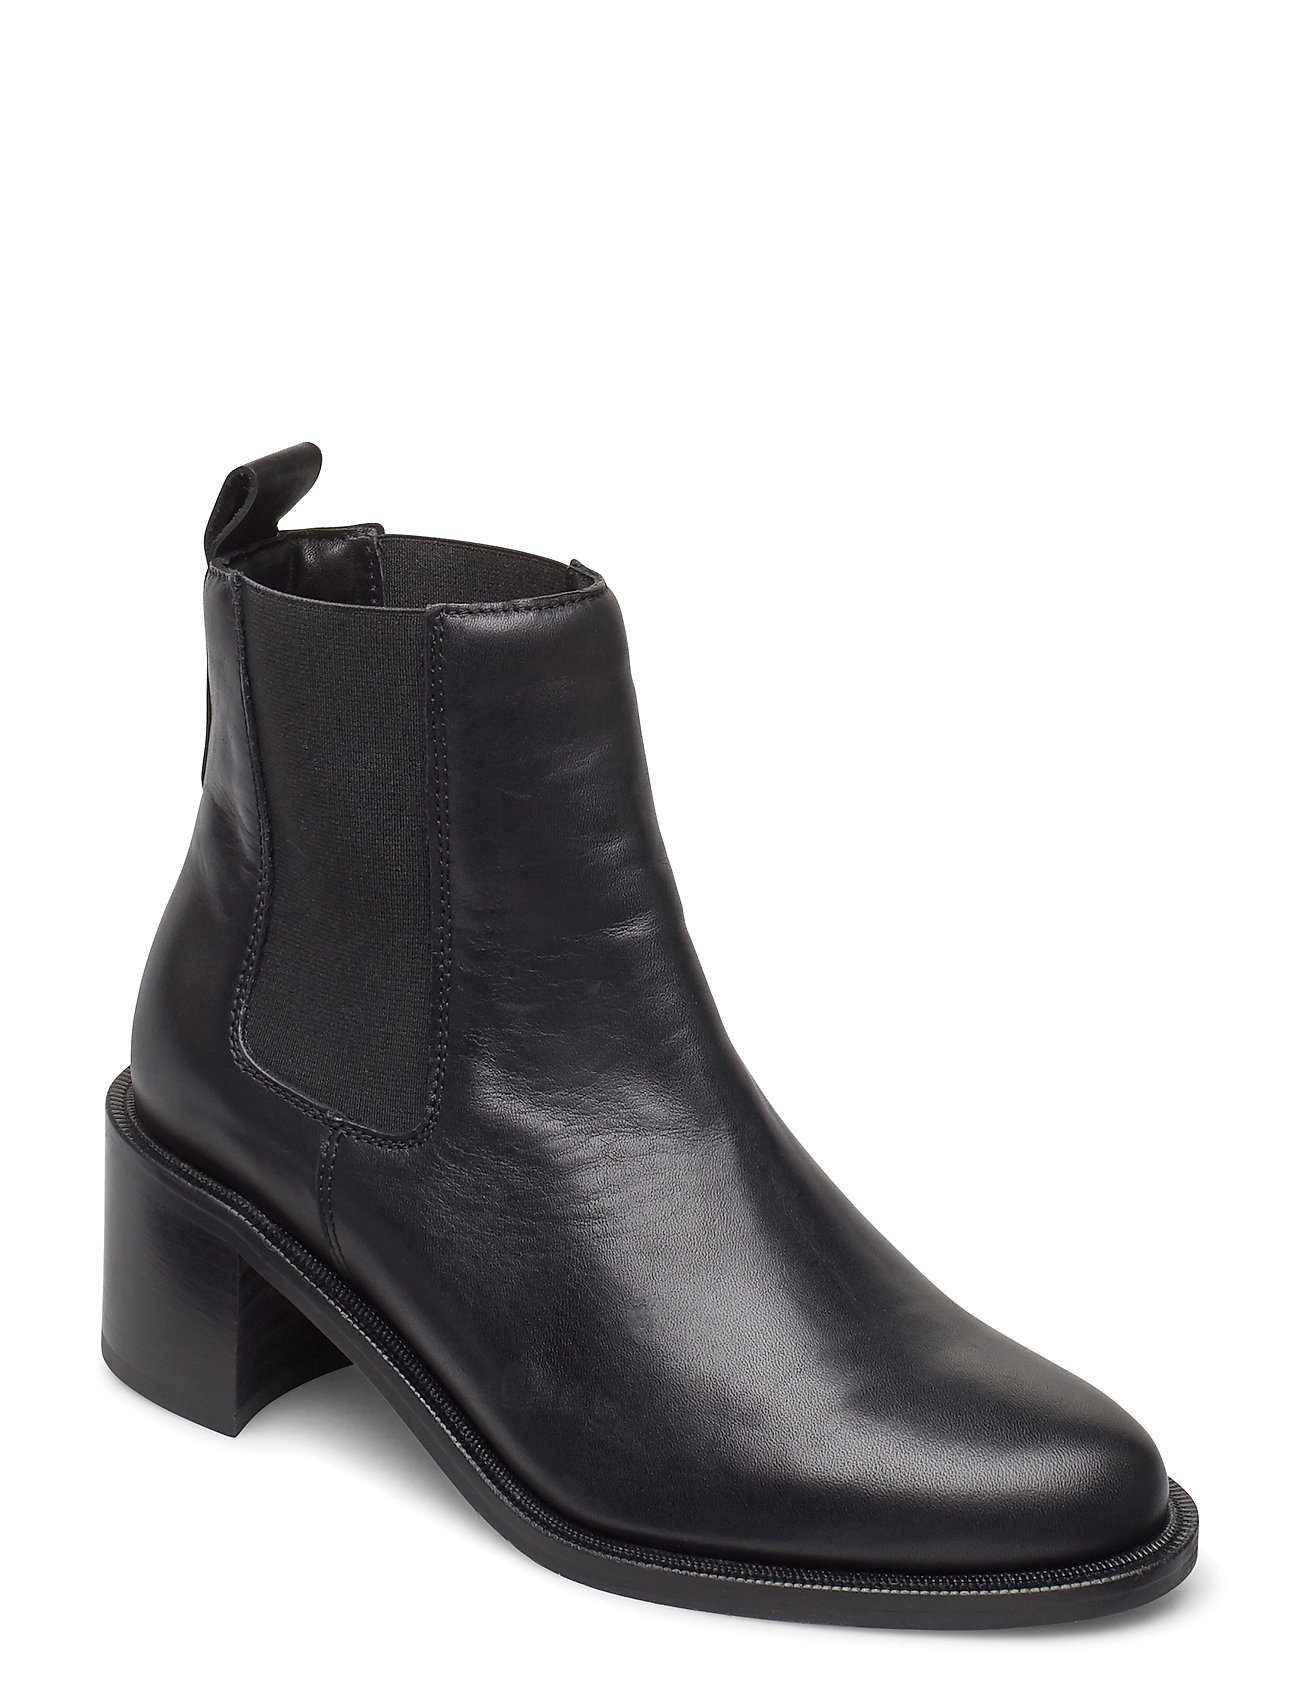 Image of Town Chelsea Shoes Boots Ankle Boots Ankle Boot - Heel Sort Royal RepubliQ (3429249391)